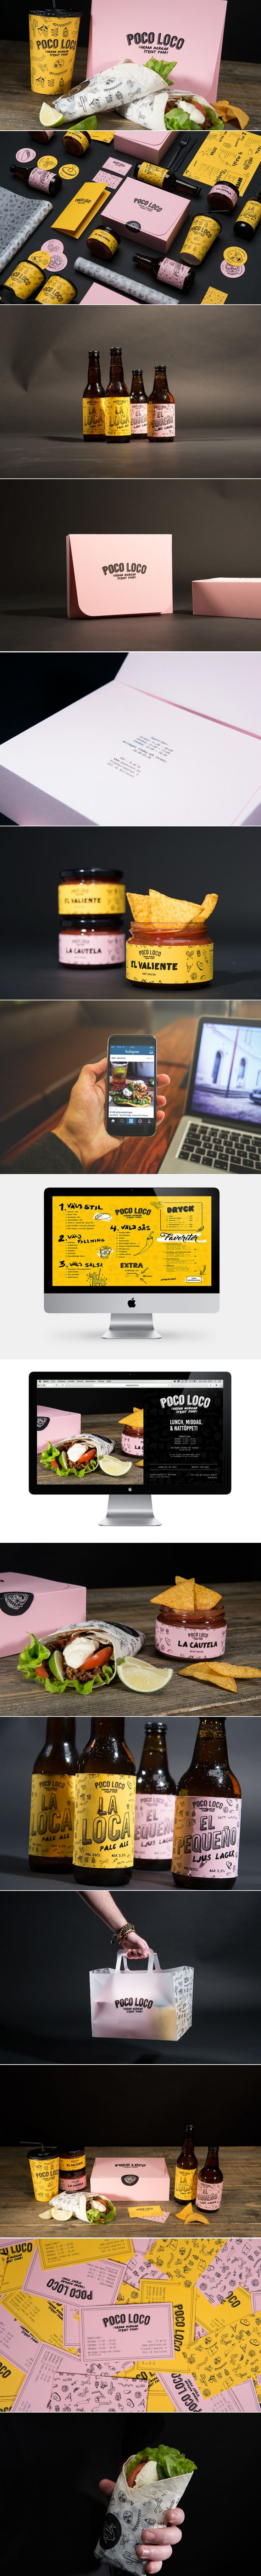 Poco Loco — The Dieline | Packaging & Branding Design & Innovation News